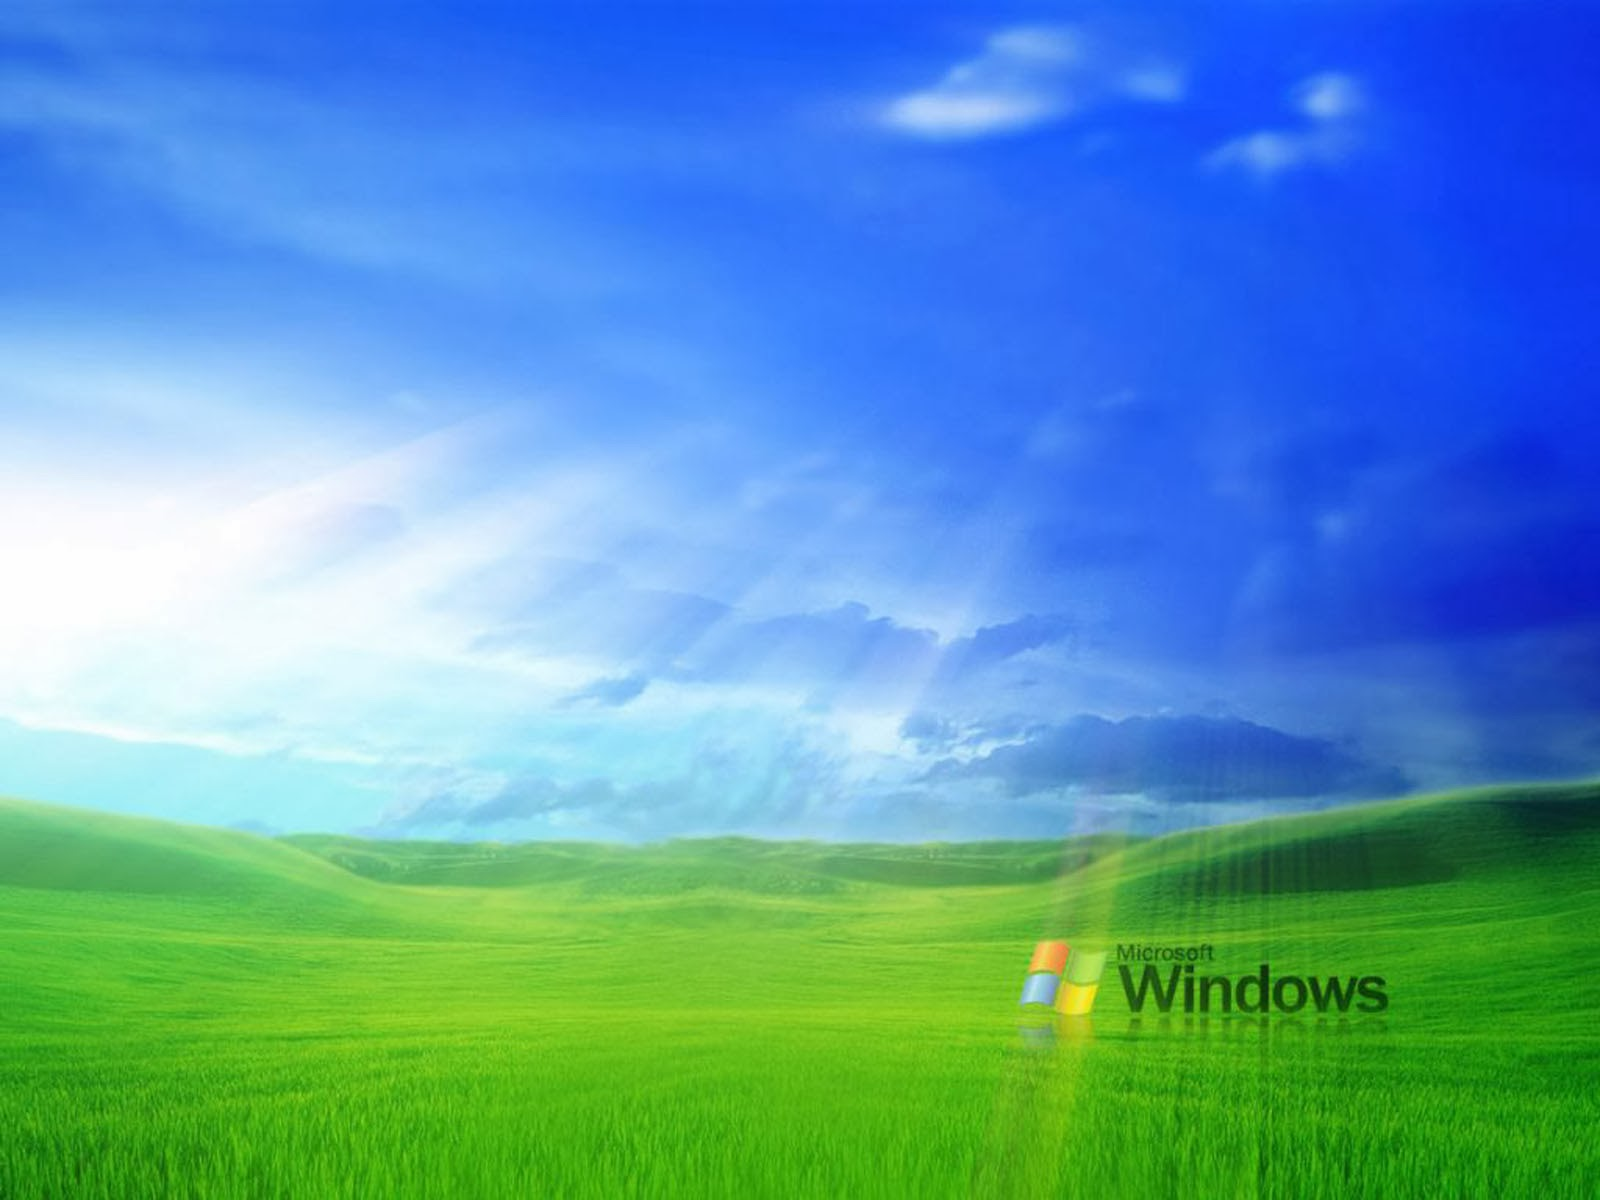 grasswindowsxpwallpapers9 resize450300